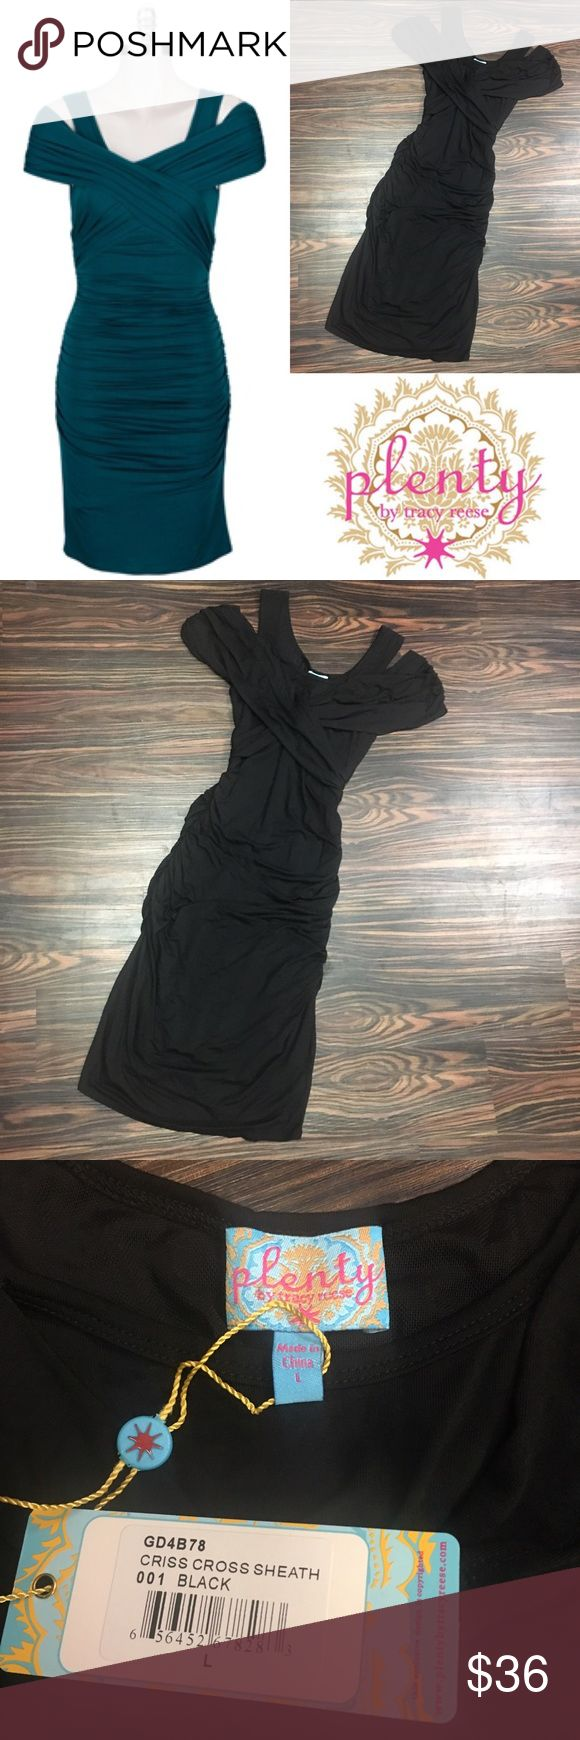 Plenty by Tracy Reese cross cross black dress Perfect for any occasion. Flattering and butter soft Plenty by Tracy Reese cross cross dress with built in spanx lining for smoothness. Plenty by Tracy Reese Dresses